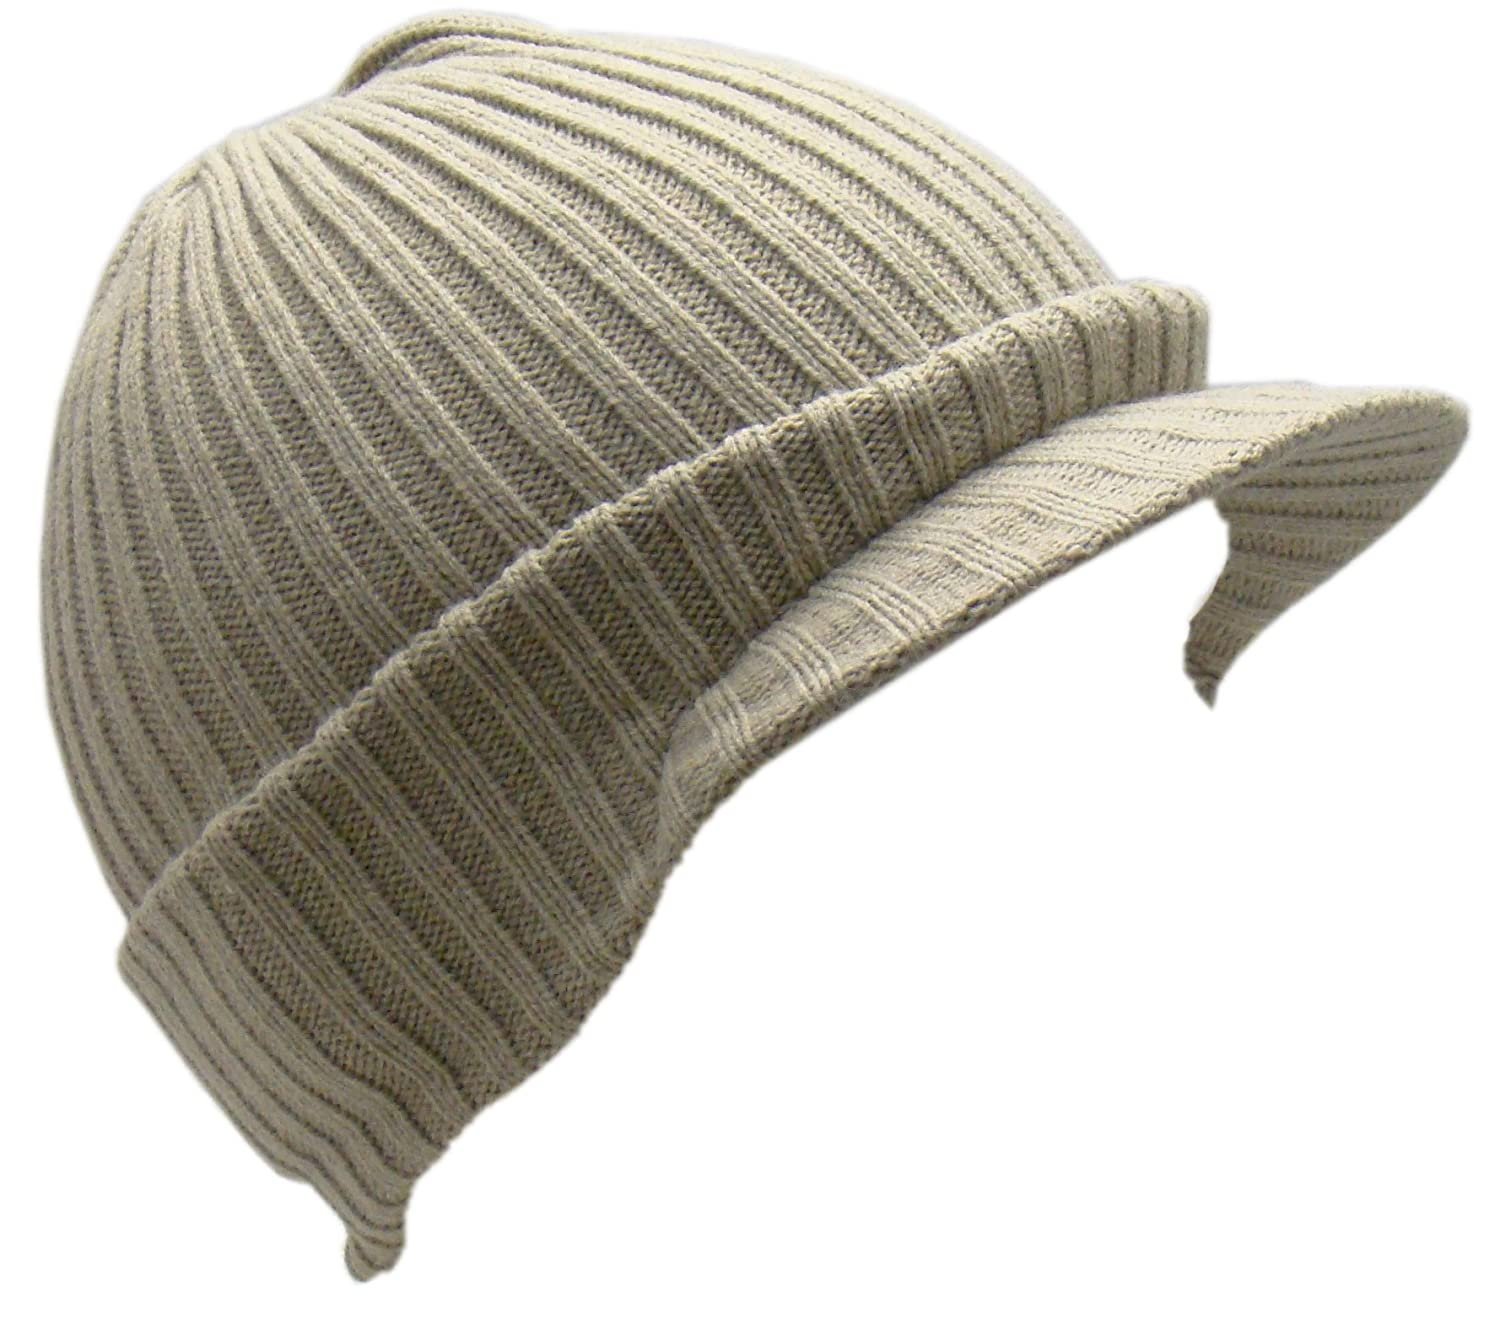 3038115e2bdc8 Men's Bickley & Mitehell Chunky Knitted Peak Beanie Hat Quality 100 ...